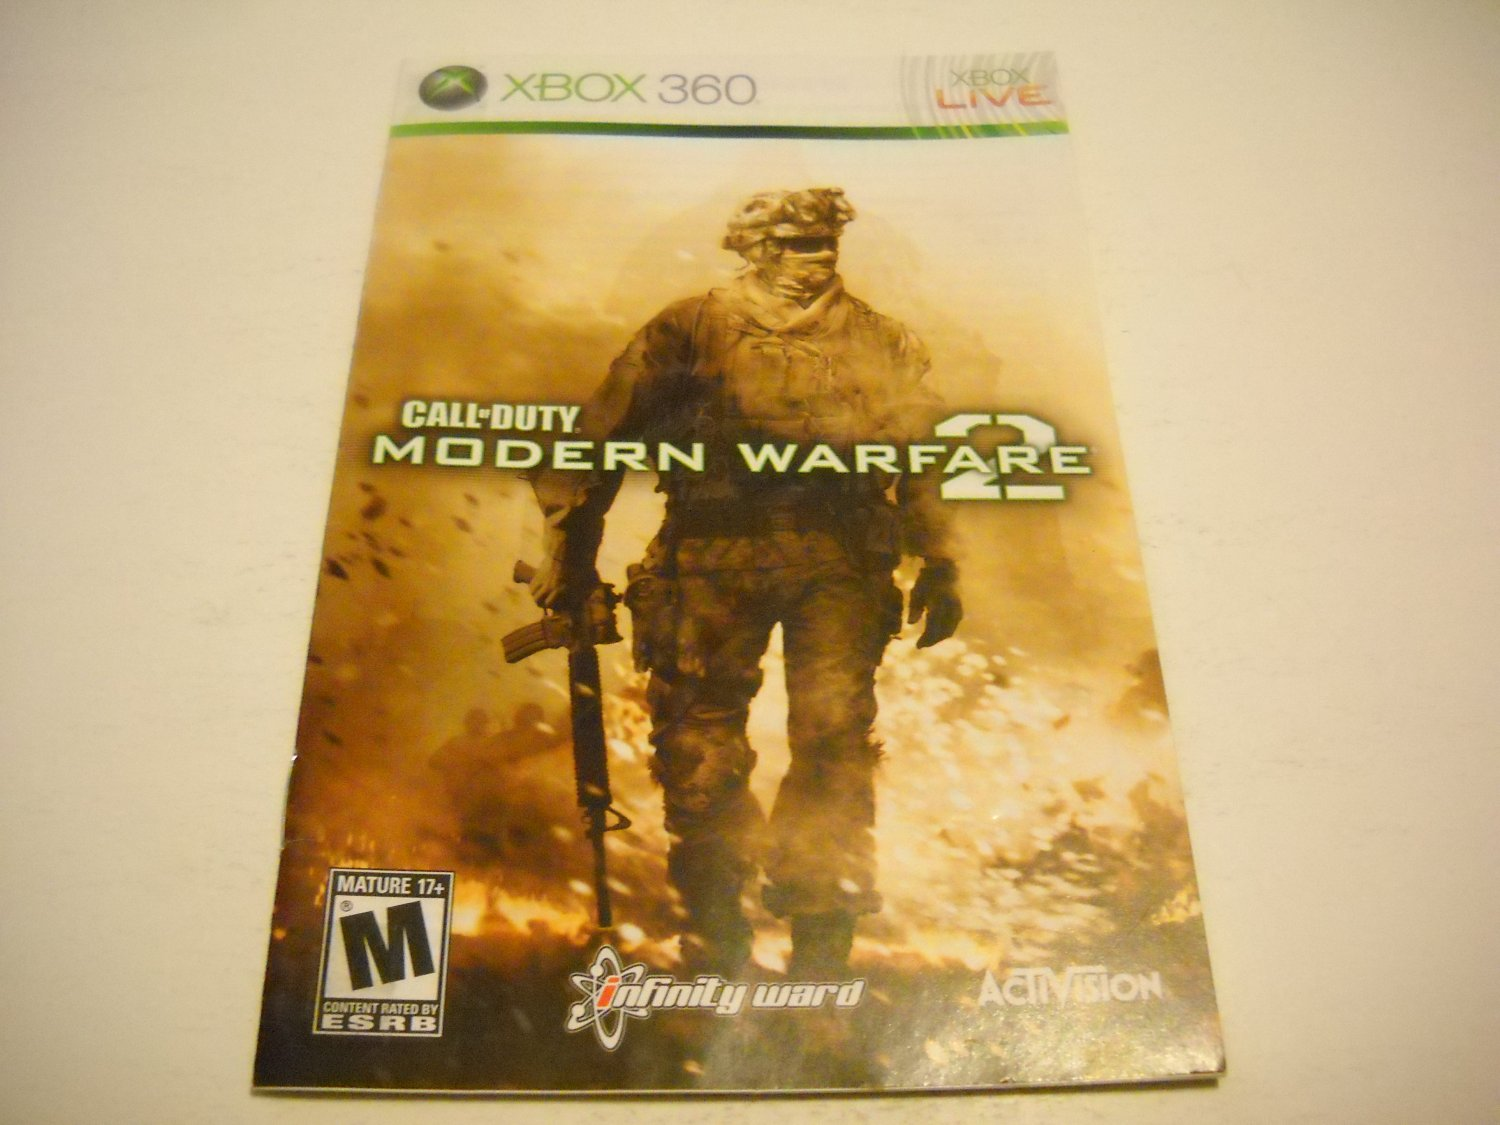 Manual ONLY ~  for Call of Duty Modern Warfare 2   - Xbox 360 Instruction Booklet